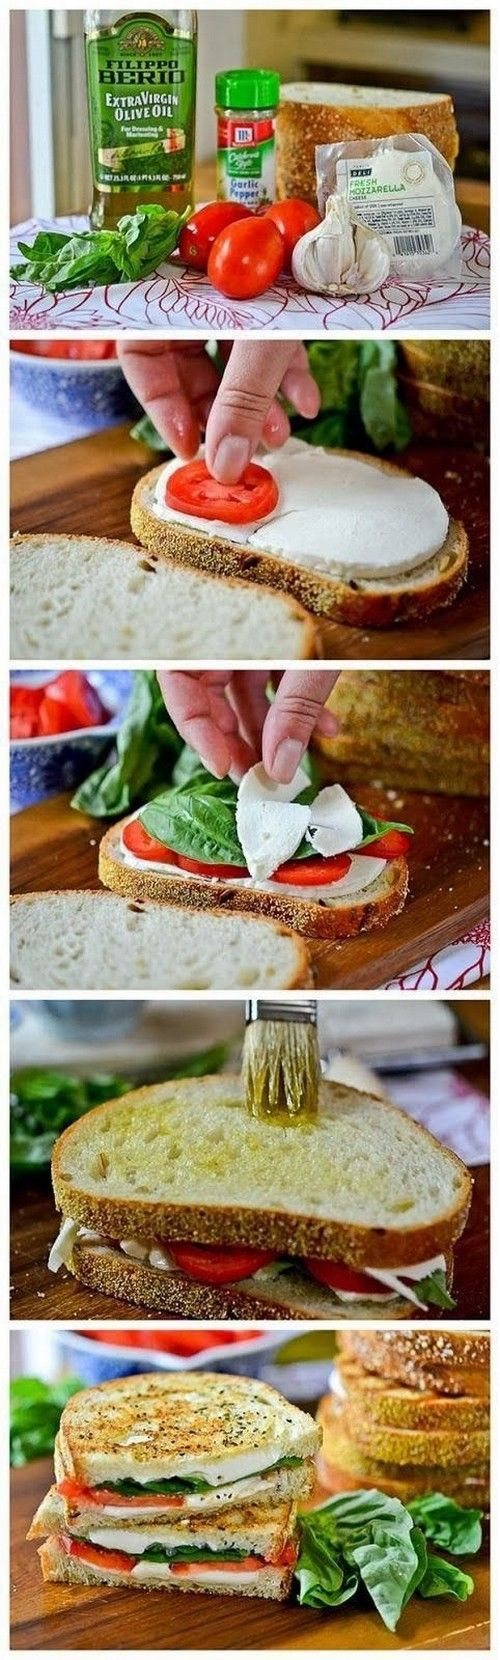 Grilled Margherita Sandwiches. These are so, so good and really simple sandwiches to make!.